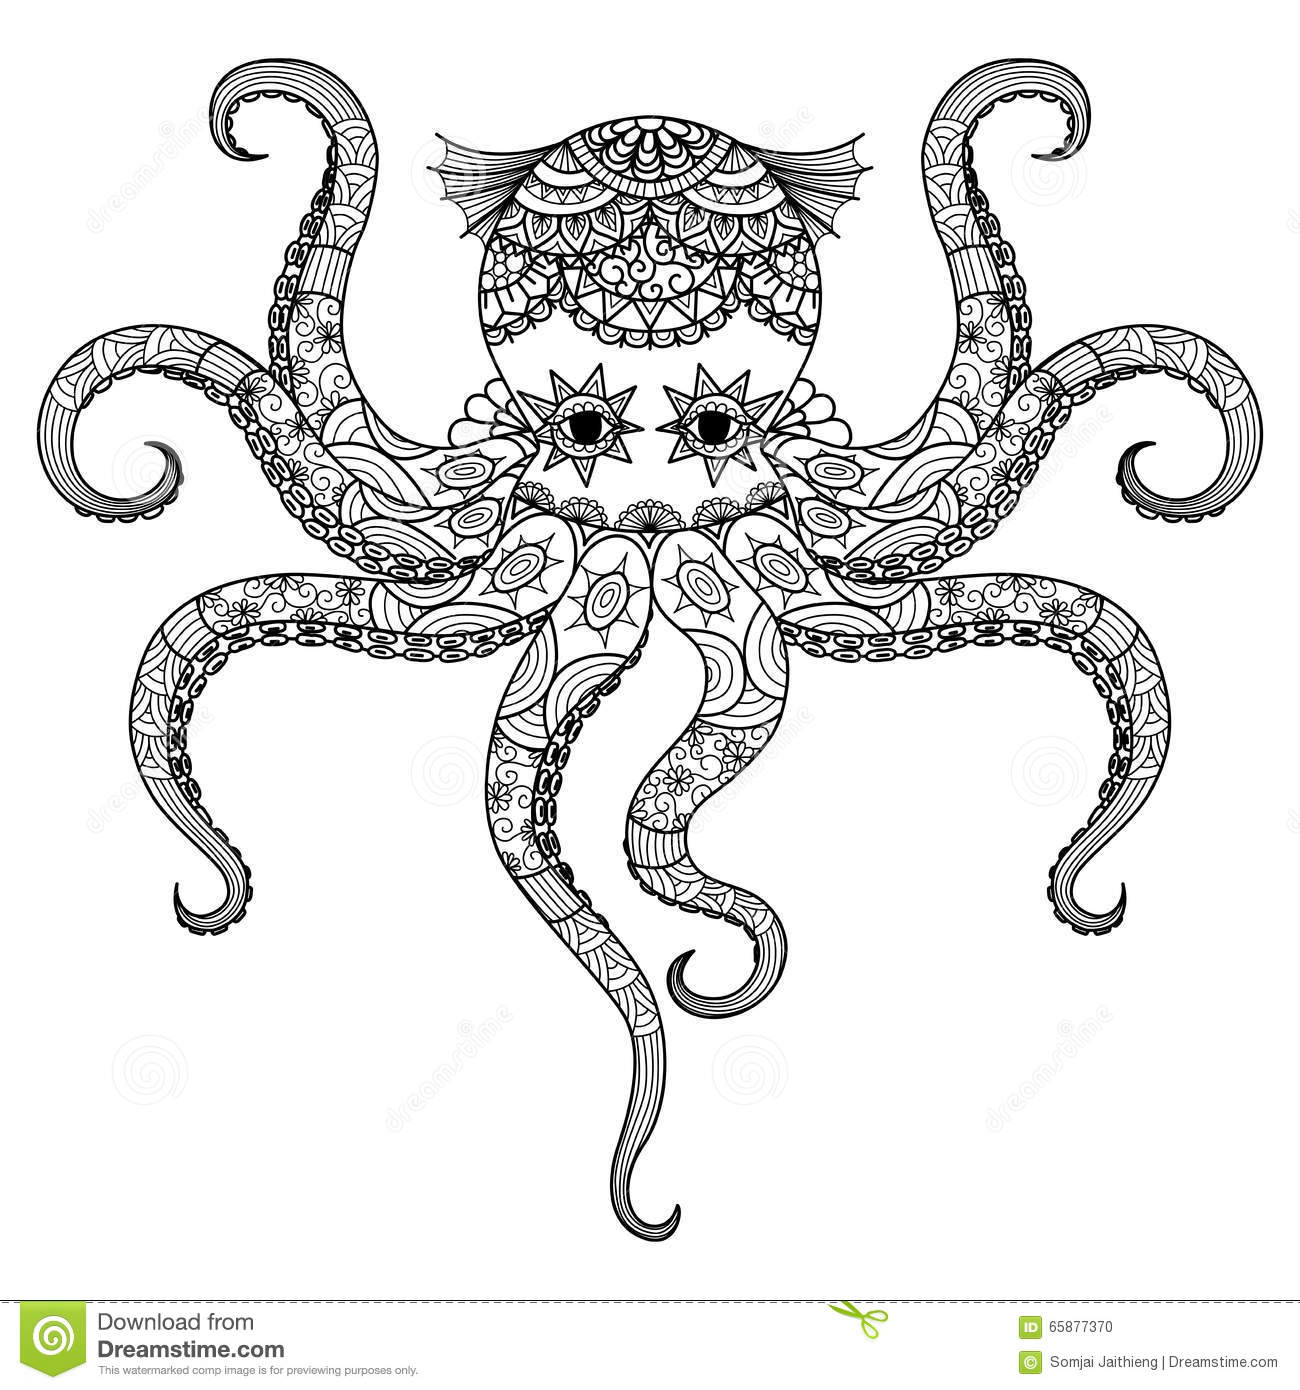 mandala octopus coloring page drawing octopus zentangle design for coloring book for mandala page octopus coloring